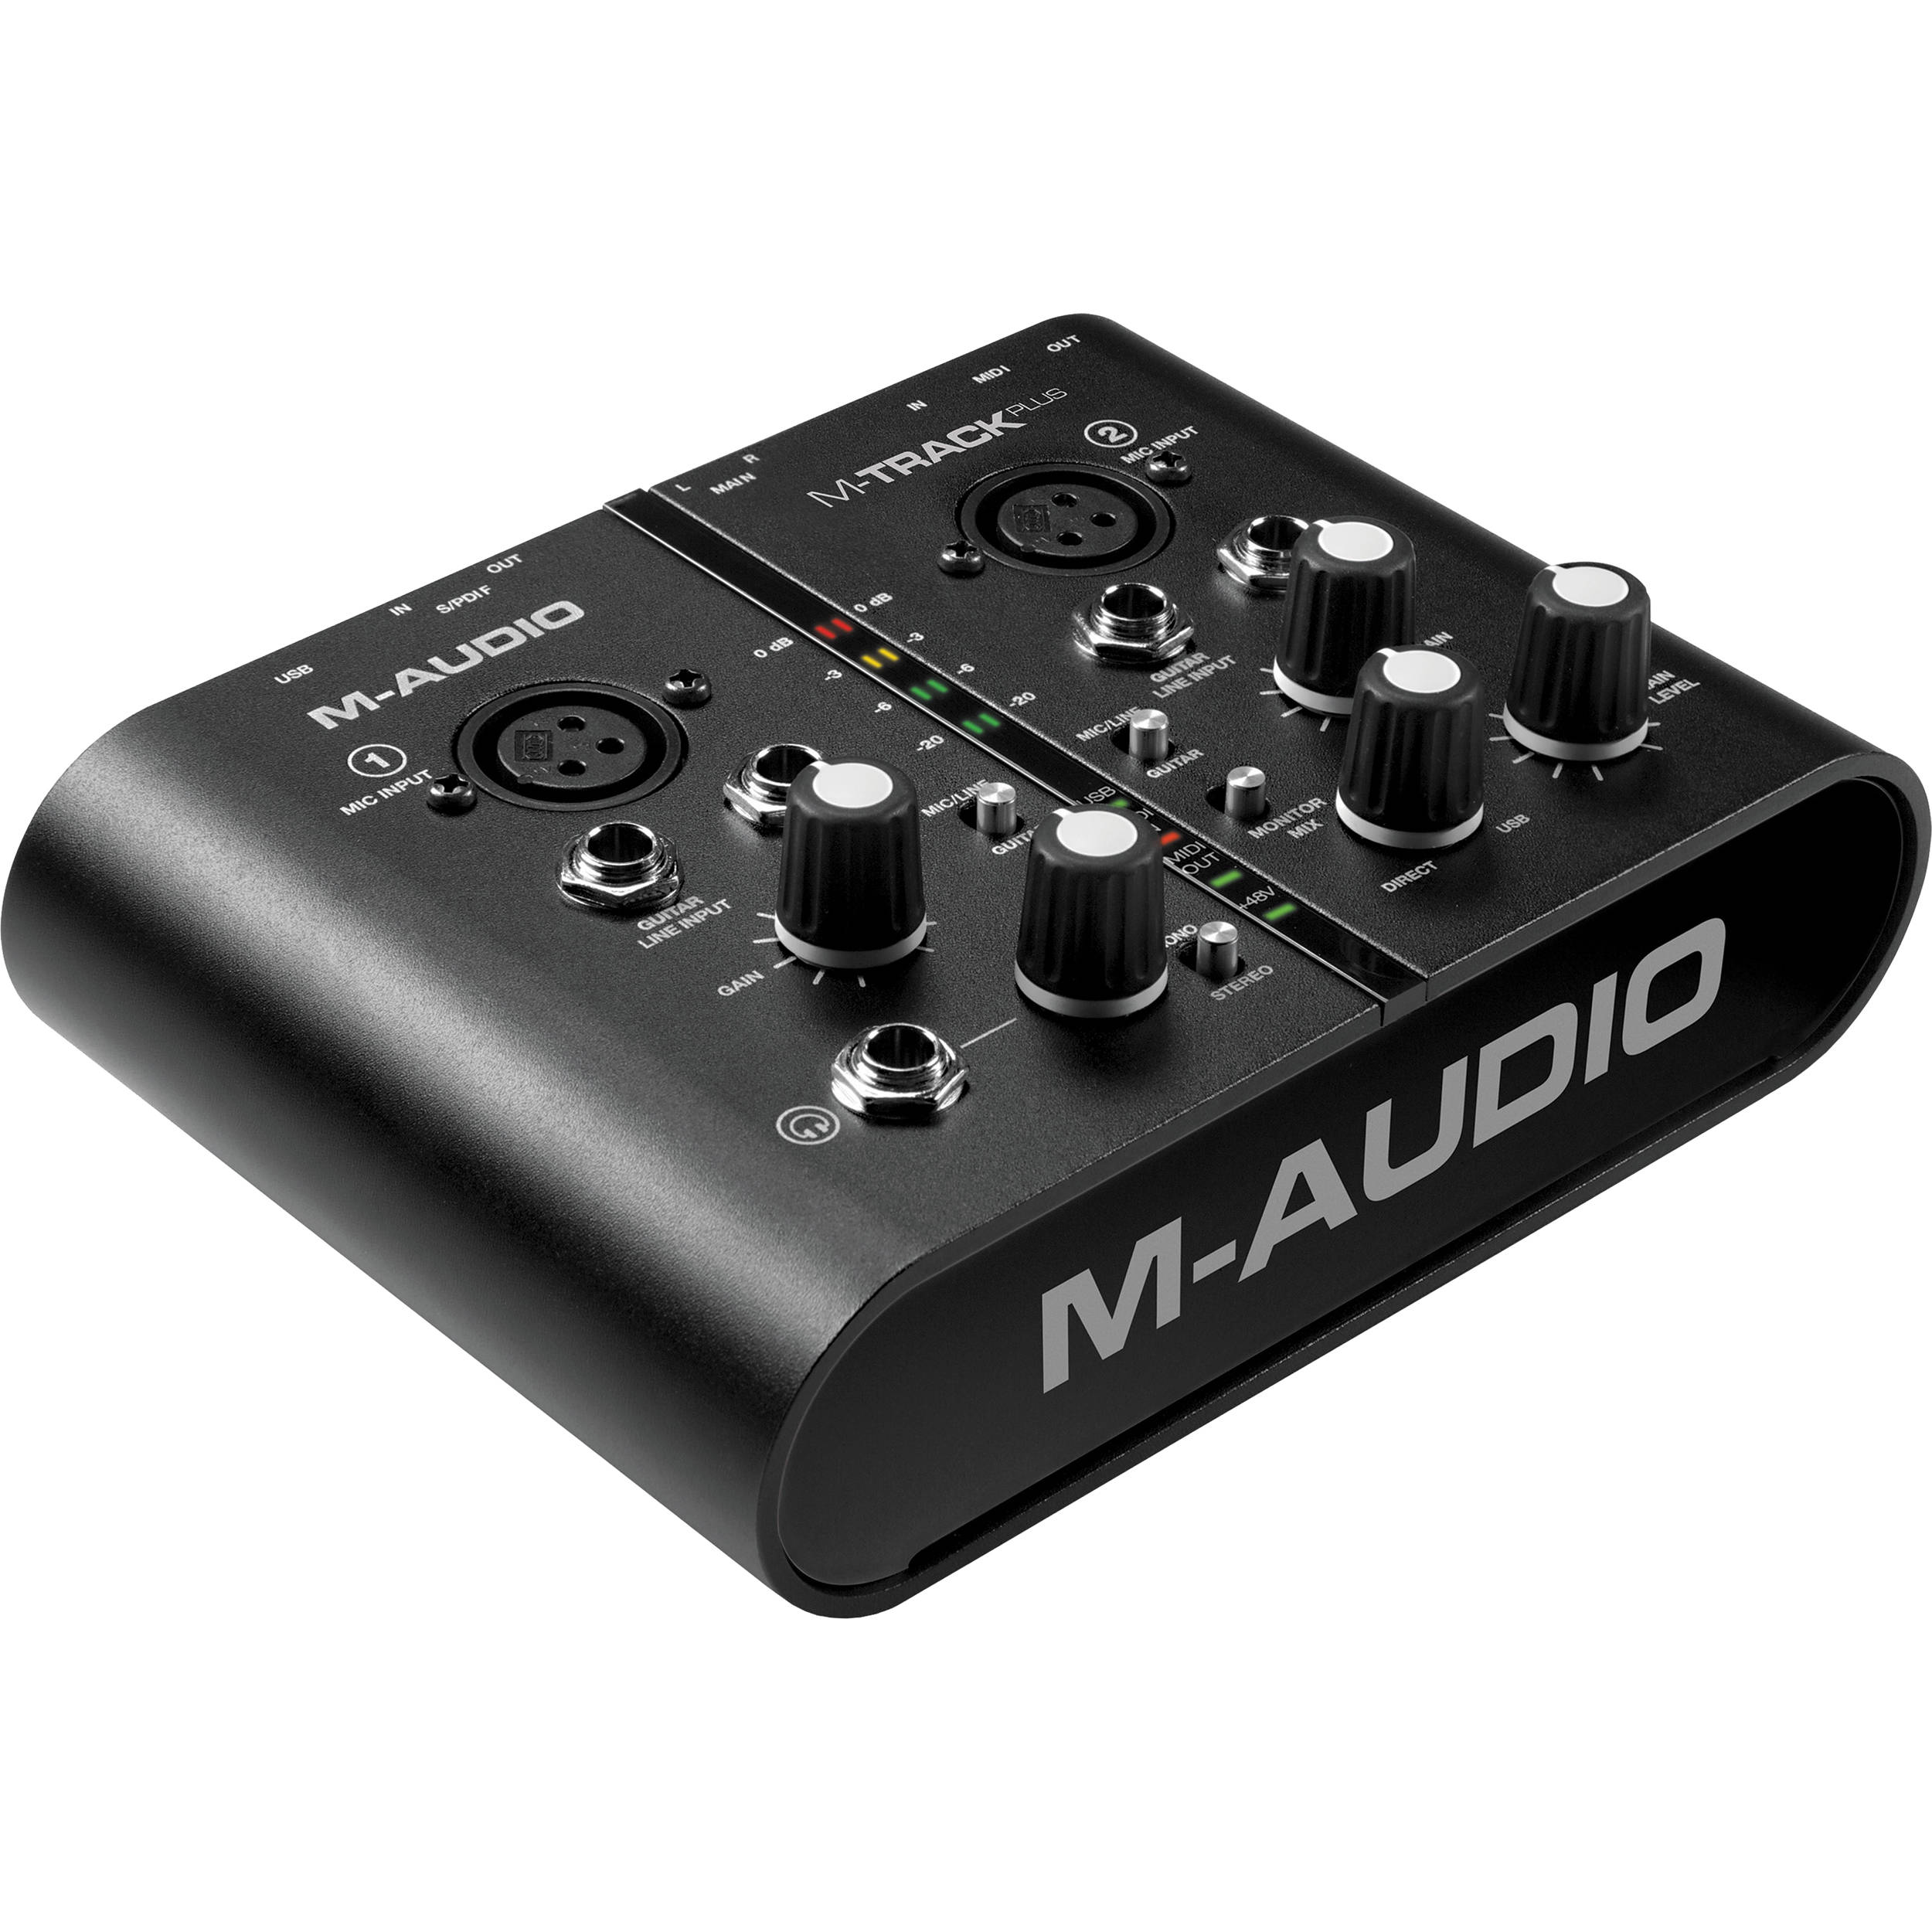 m audio m track plus usb audio midi interface mtrack plusnpte. Black Bedroom Furniture Sets. Home Design Ideas